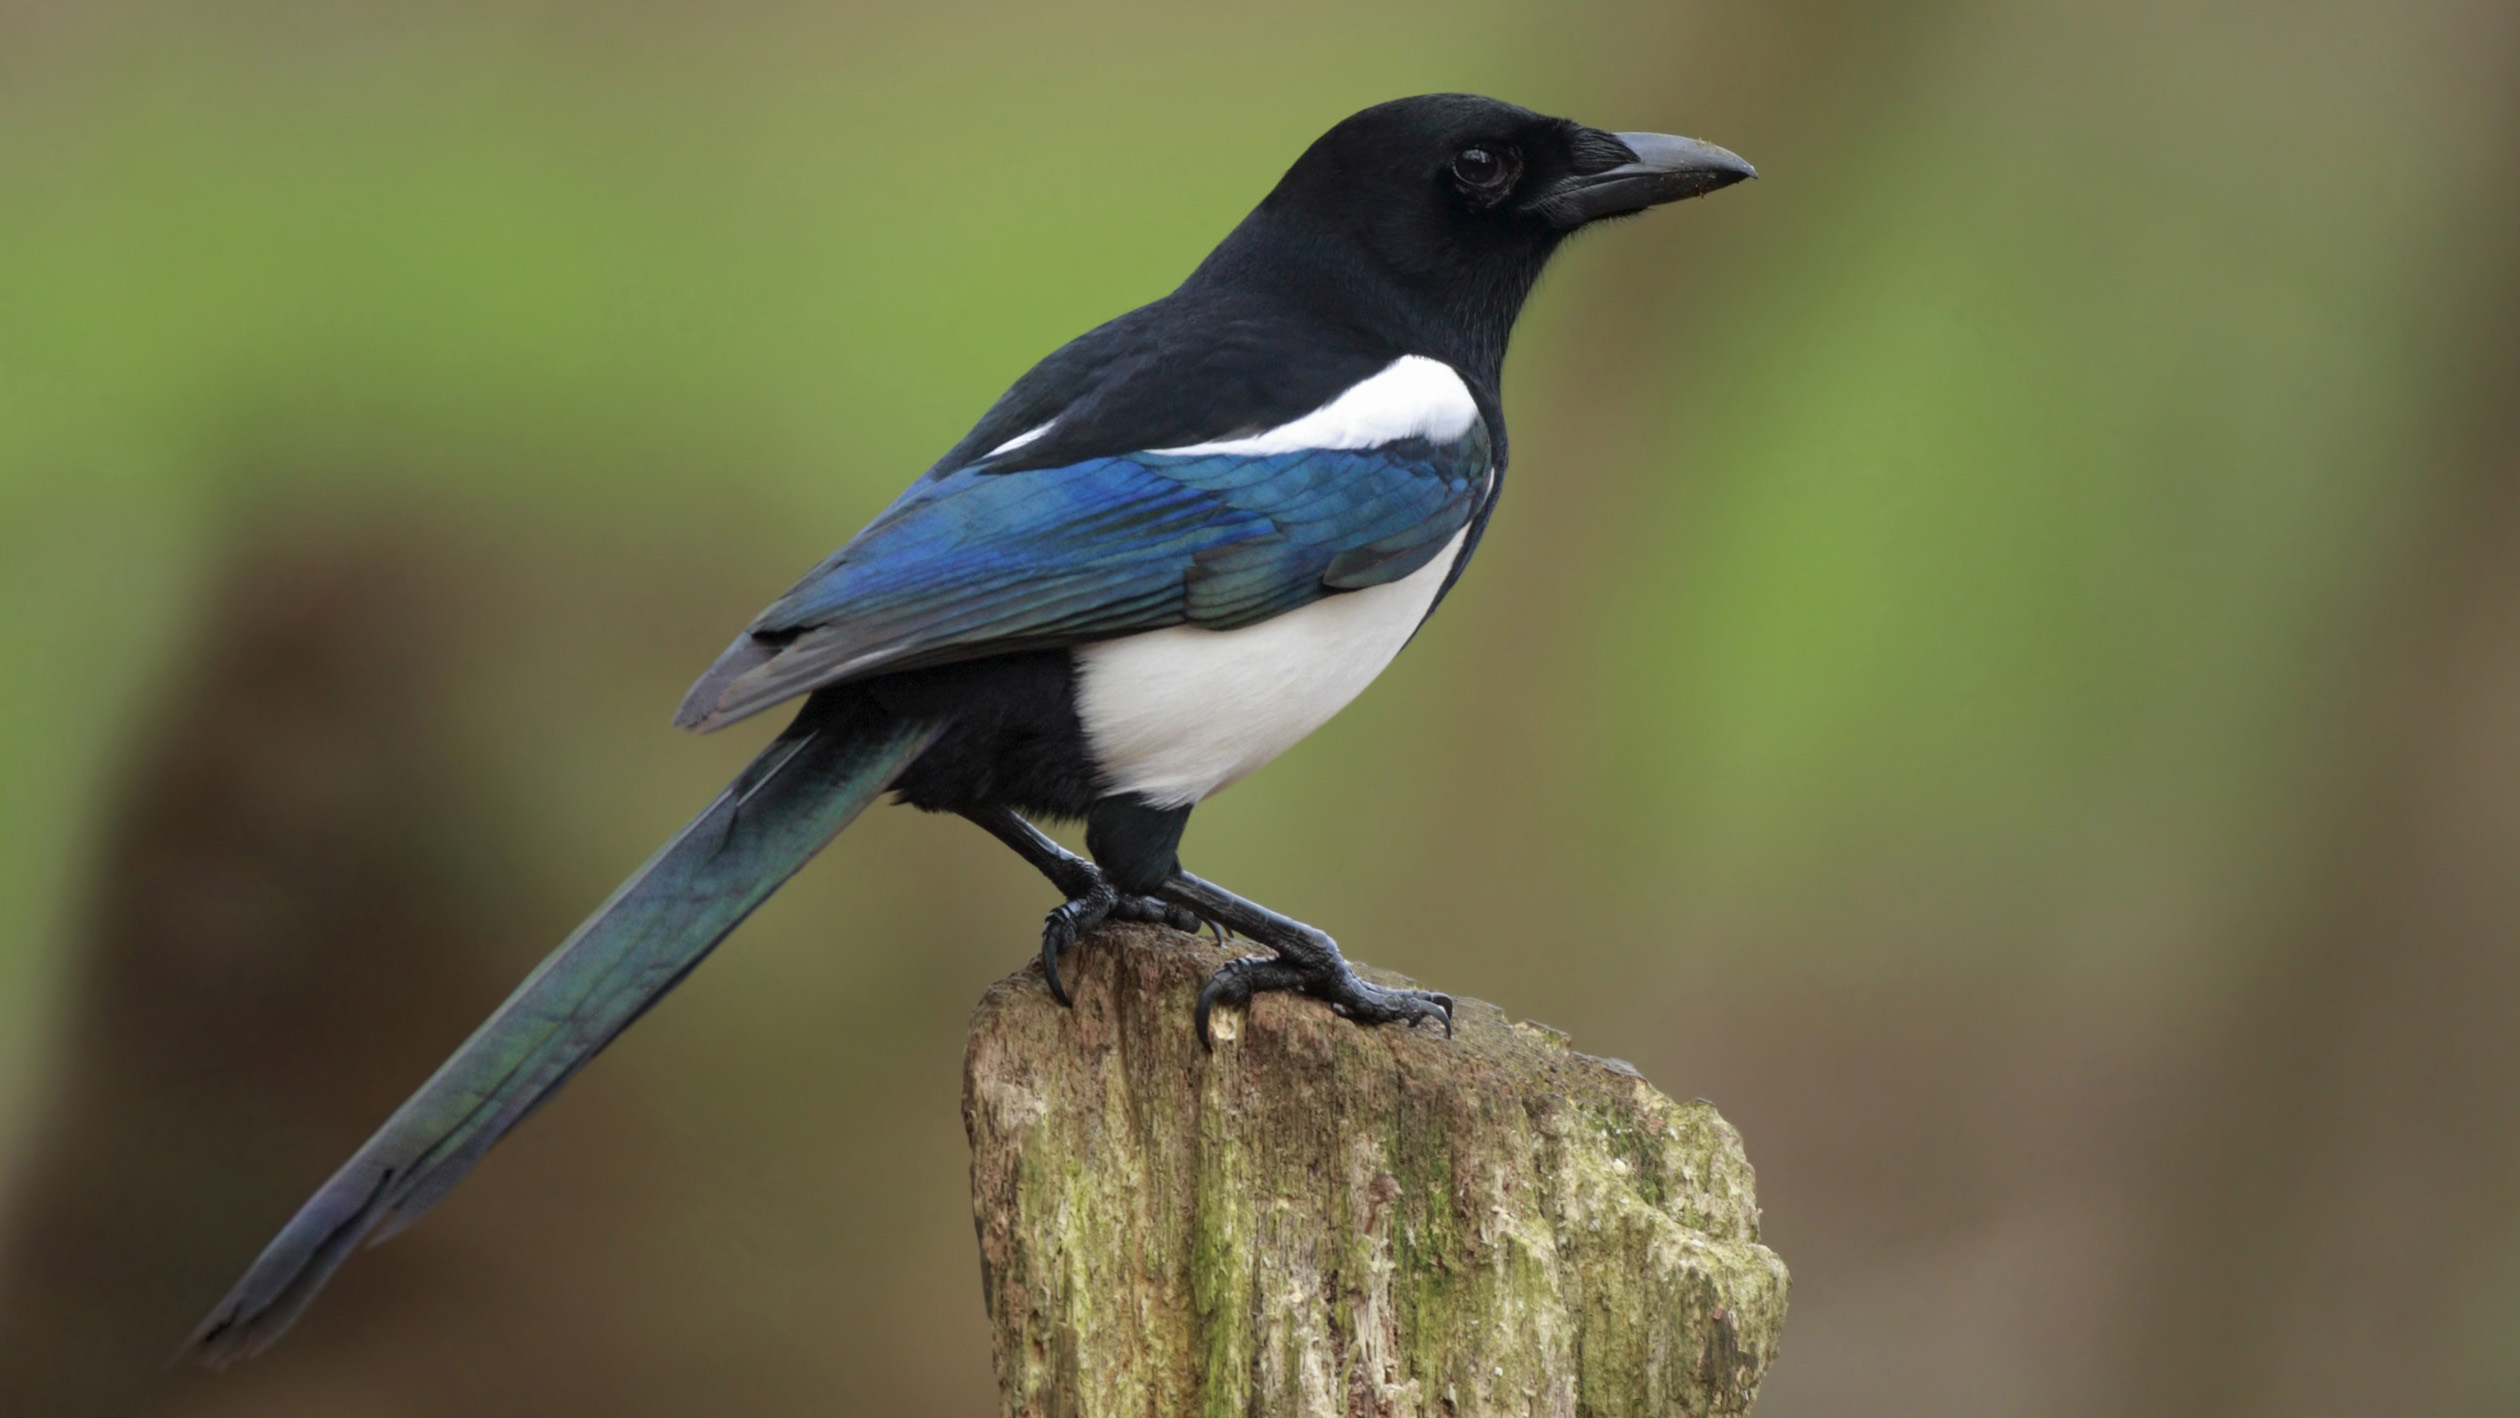 Afbeelding Vlaamse Gaai The Meaning And Symbolism Of The Word - Magpie